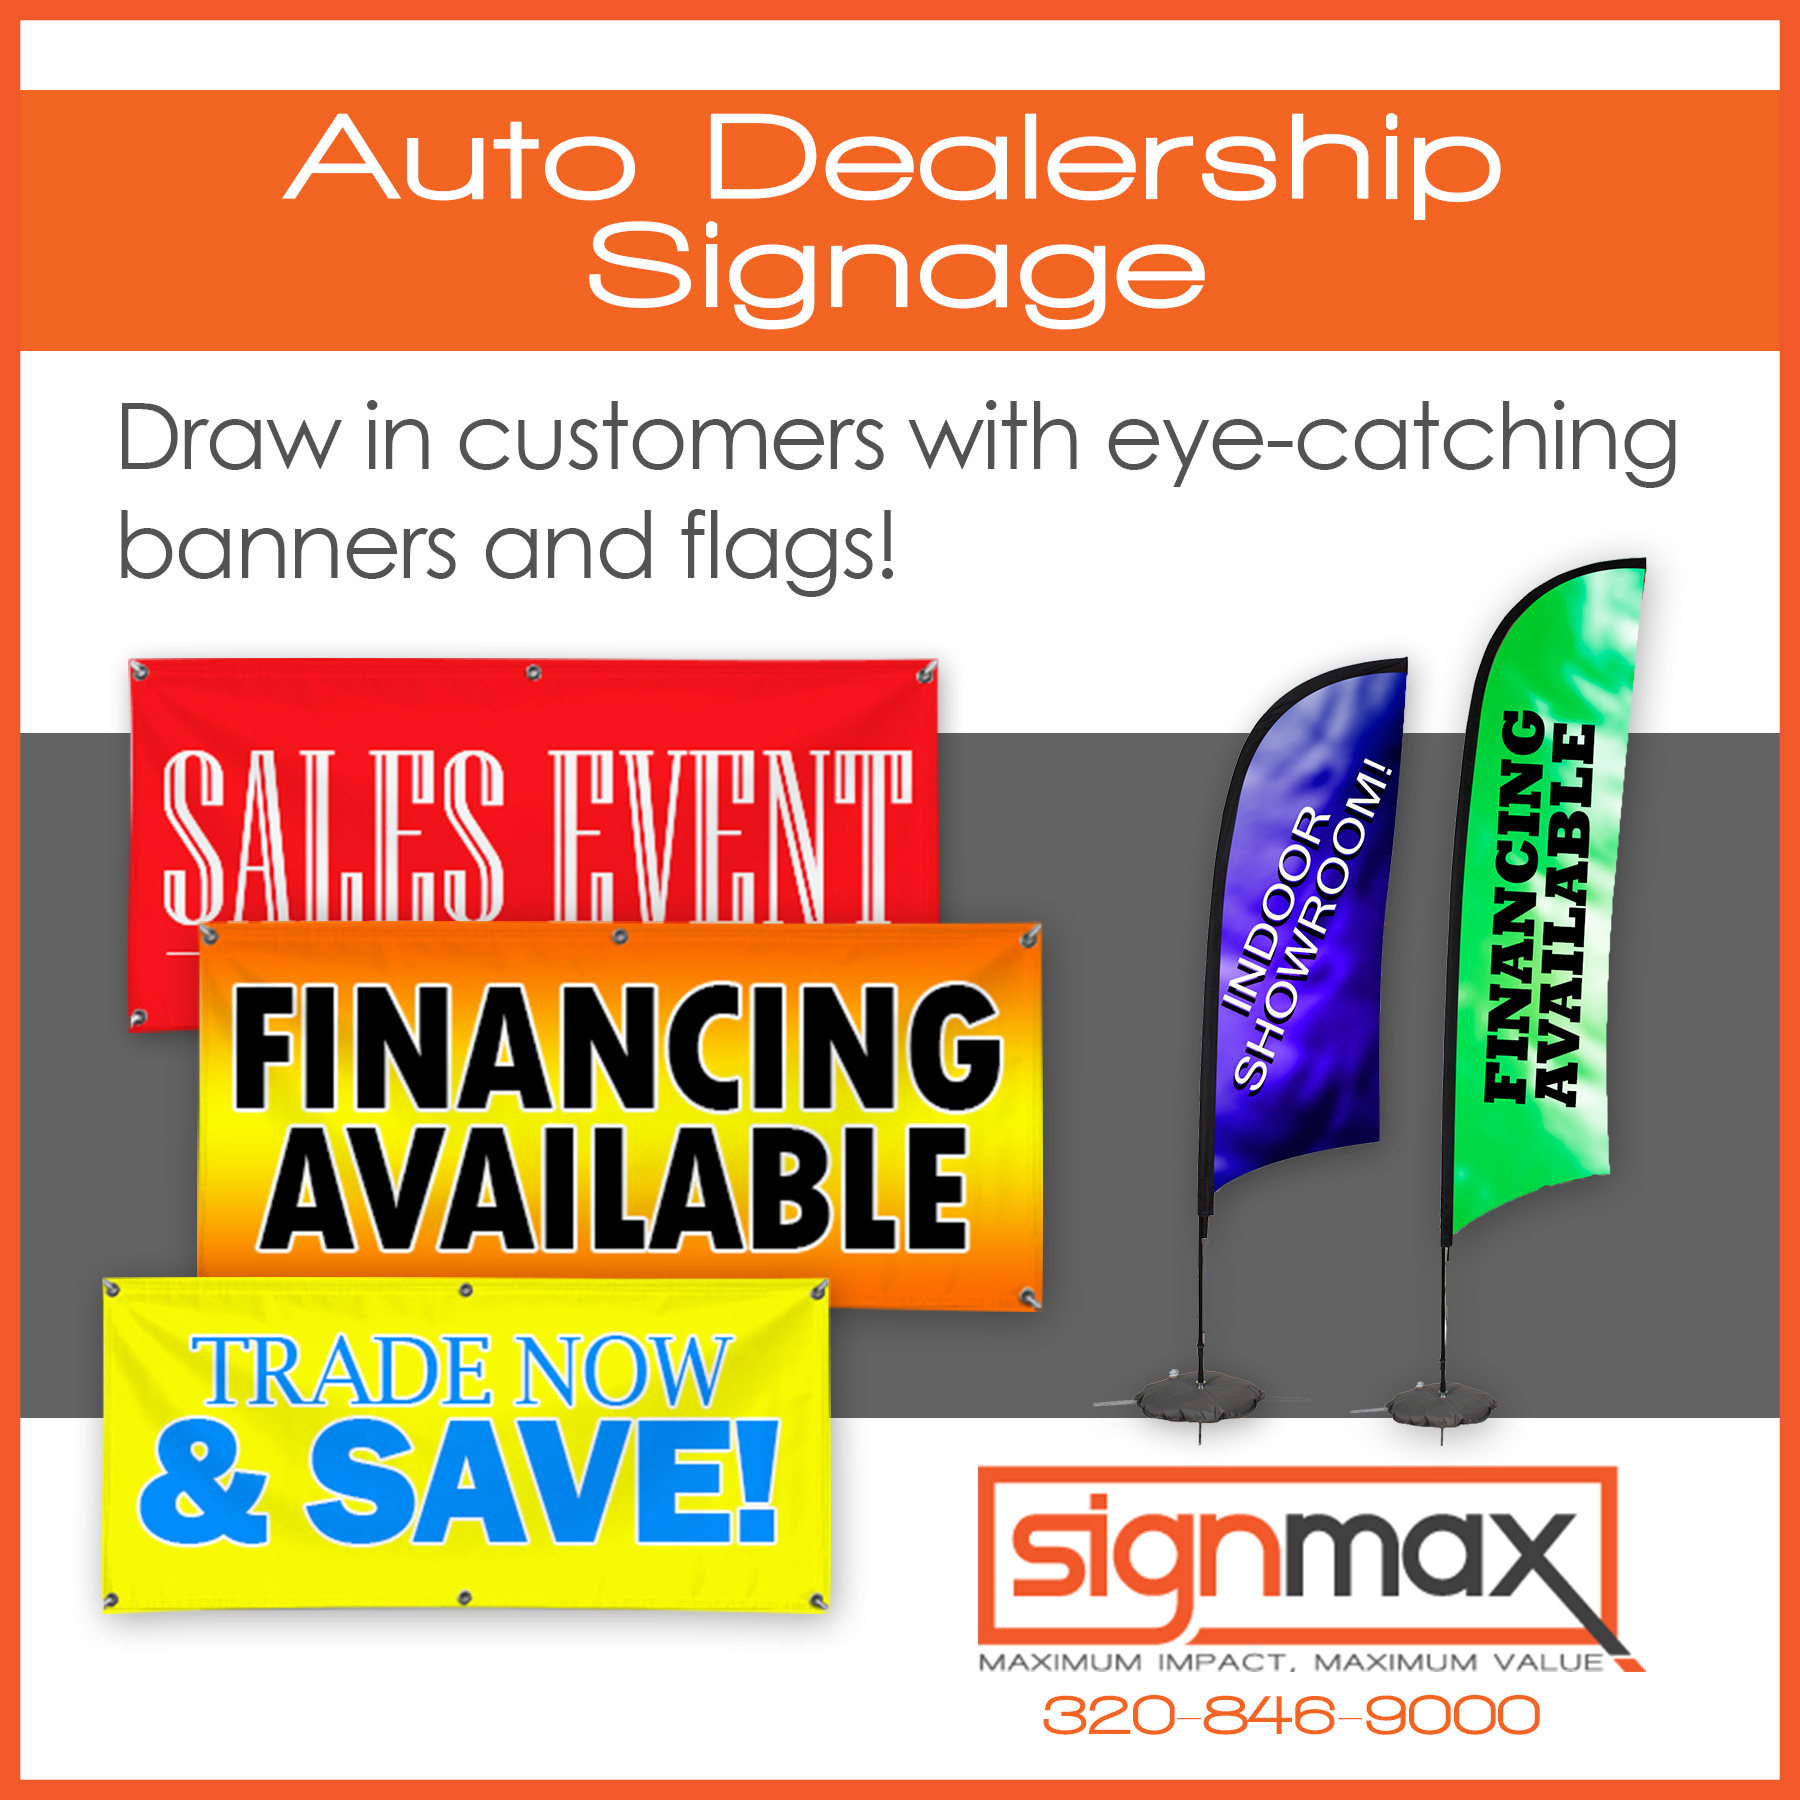 Auto Dealership Banners and Flags | Signmax.com